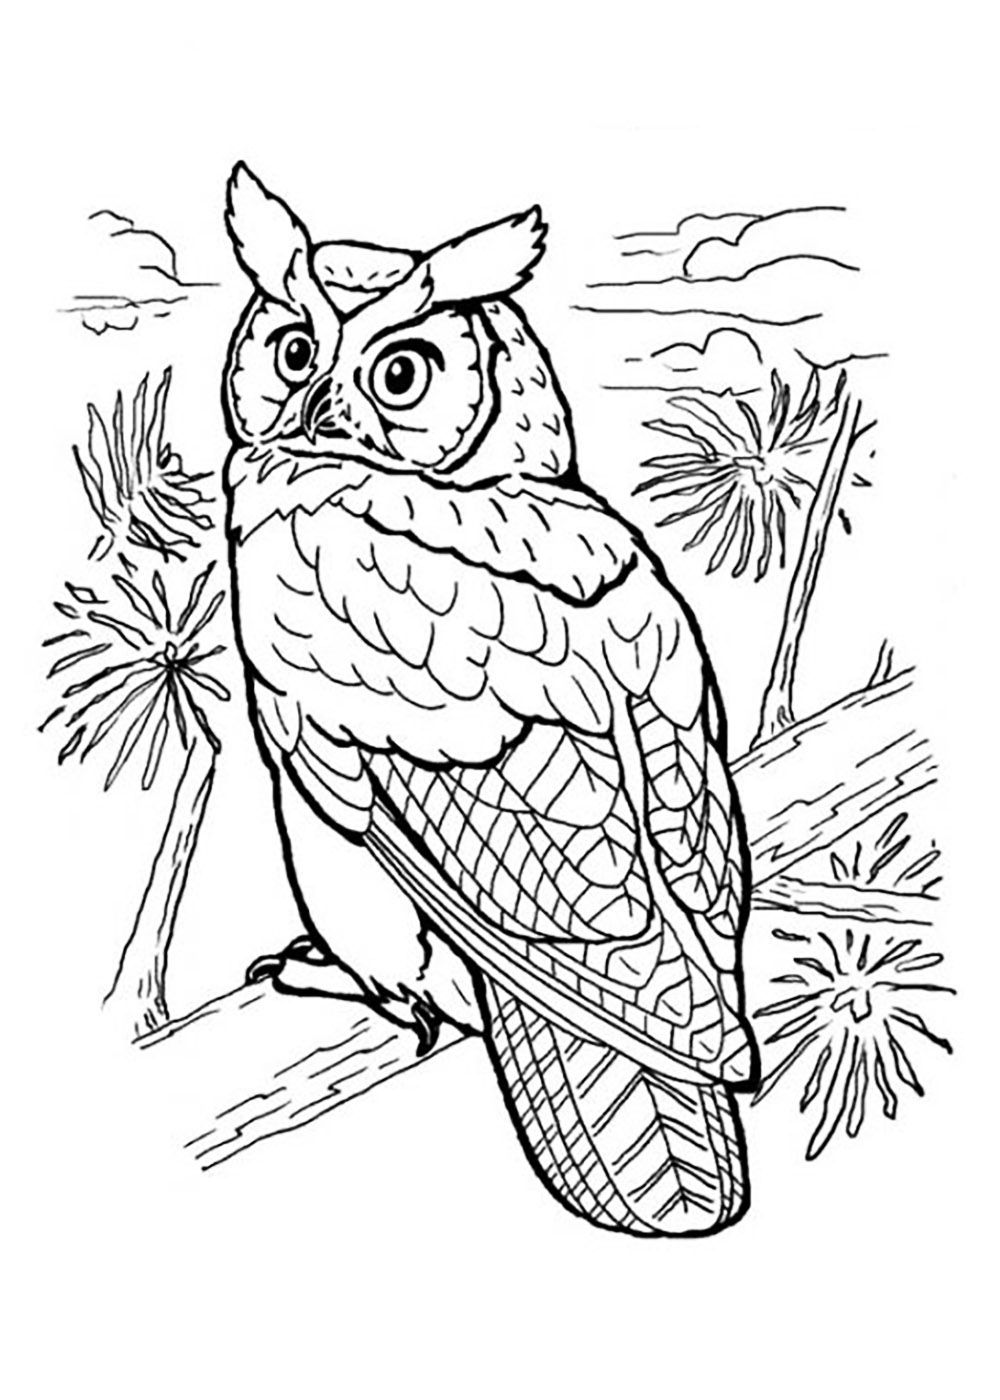 Owl Full Of Details Animals Coloring Pages For Kids Coloring Pages For Adults Just Color Owl Coloring Pages Bird Coloring Pages Animal Coloring Pages